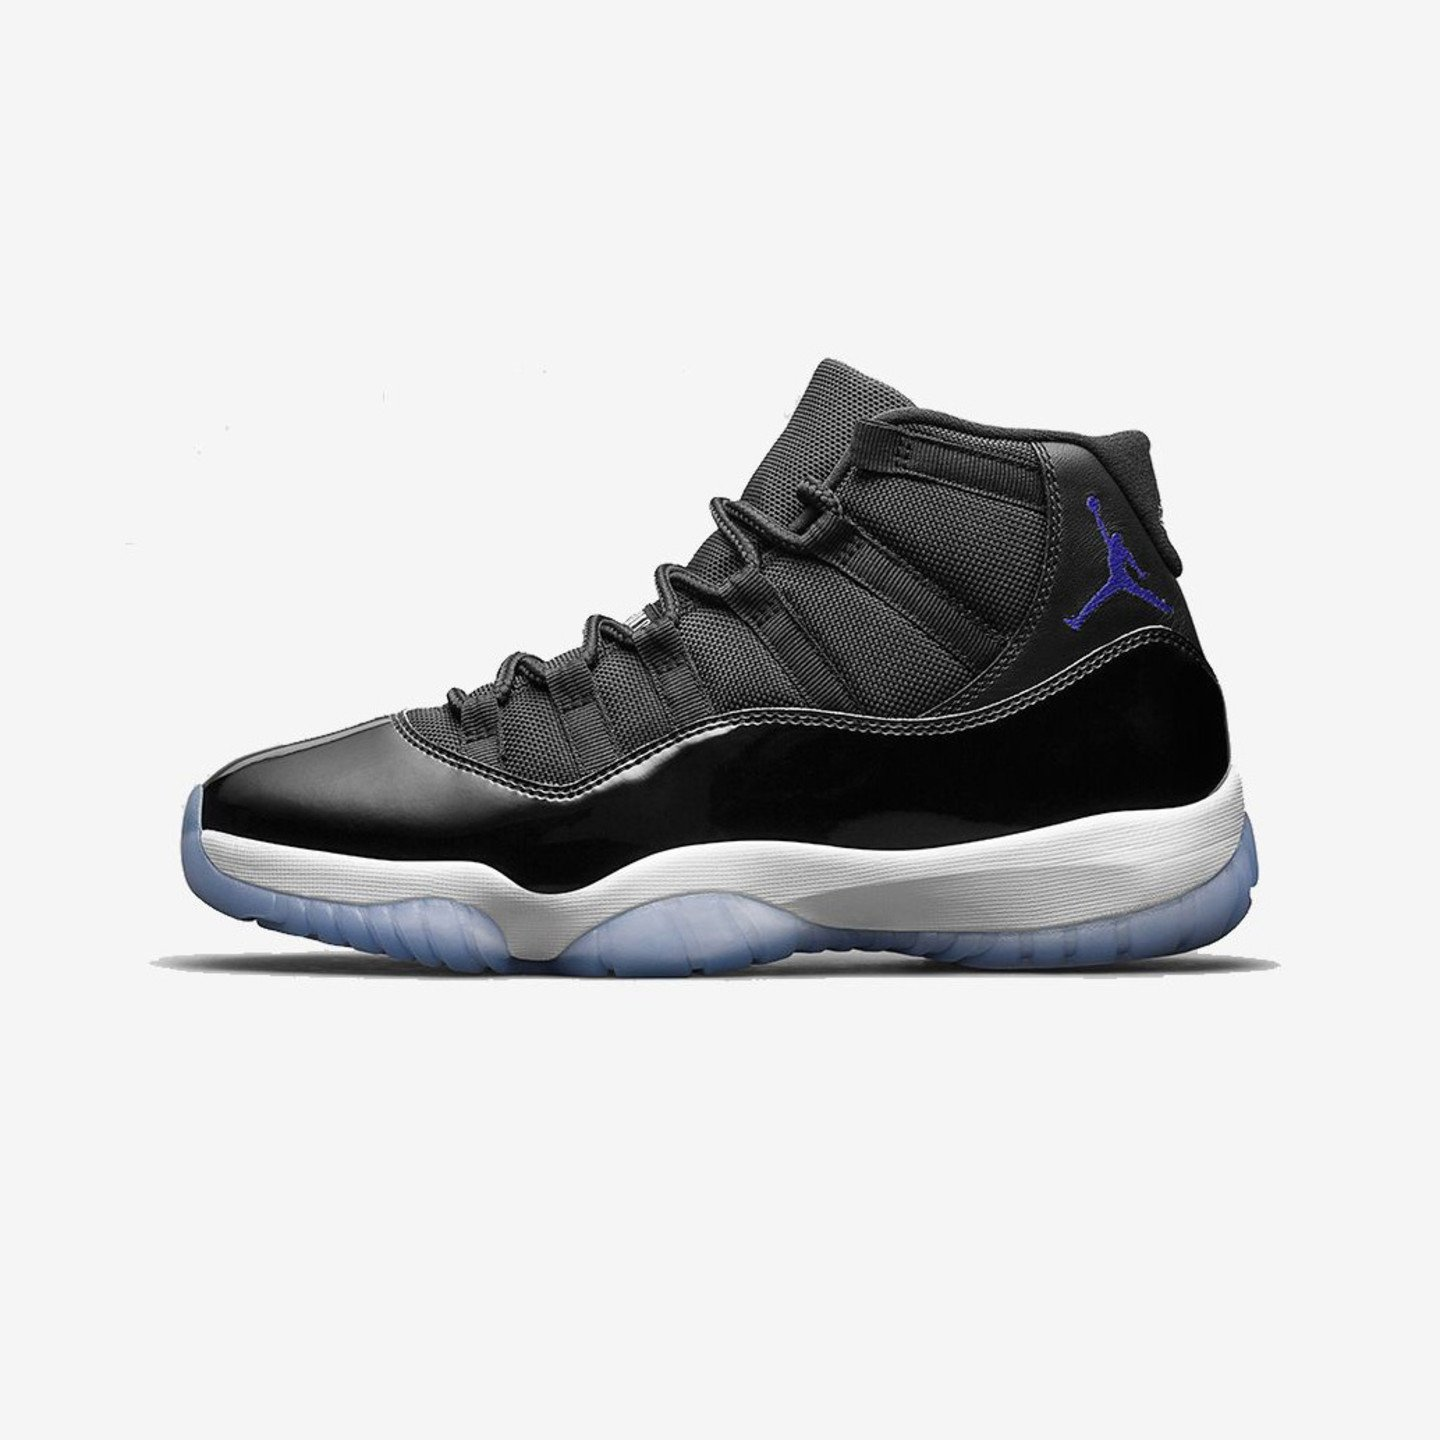 Jordan Air Jordan 11 Retro GS  'Space Jam' Black / Concord / White 378038-003-39